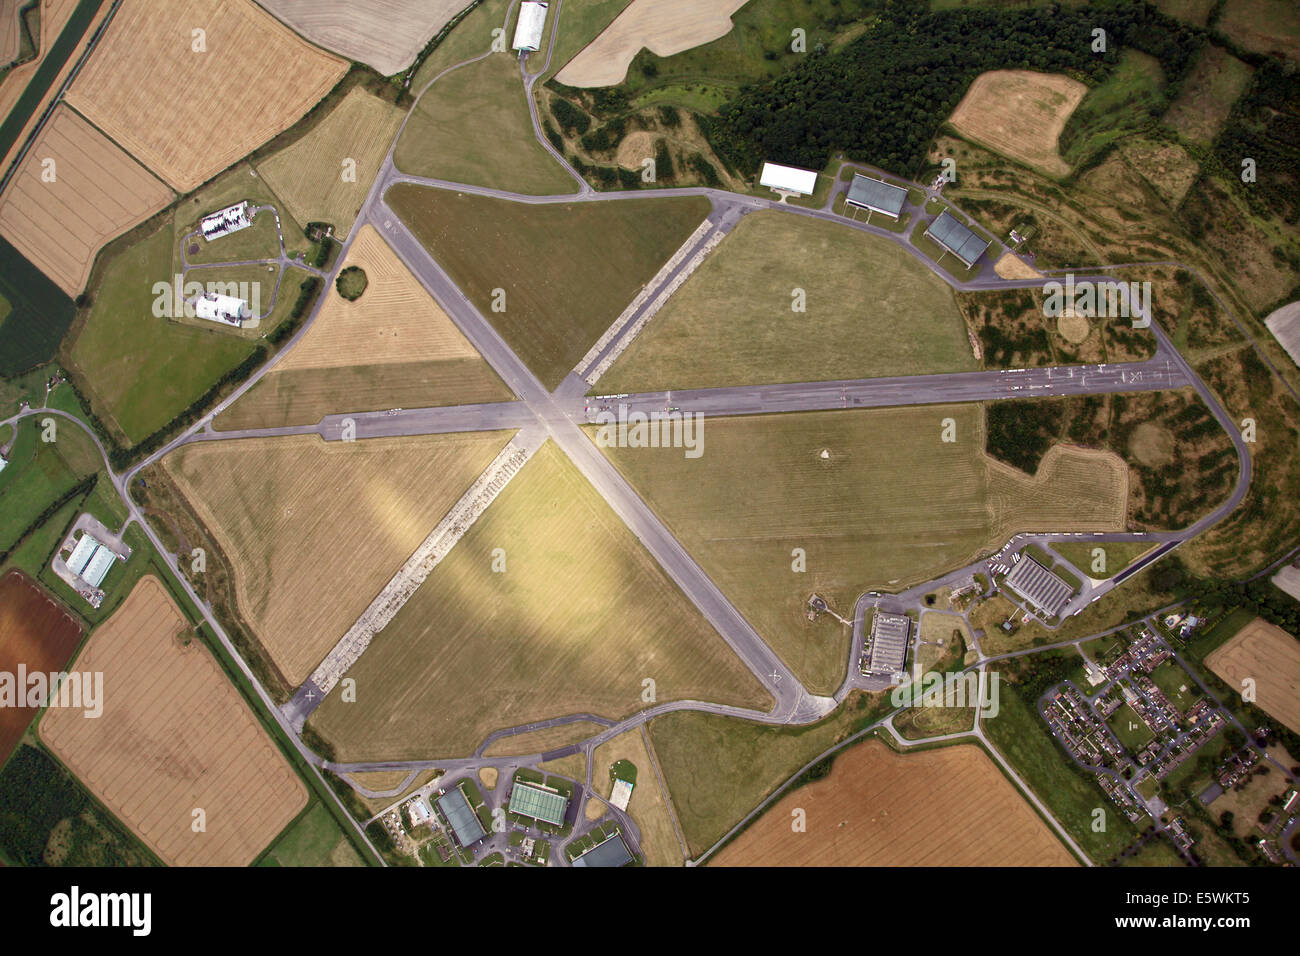 aerial view of the disused Wroughton Airfield near Swindon, Wiltshire, UK - Stock Image